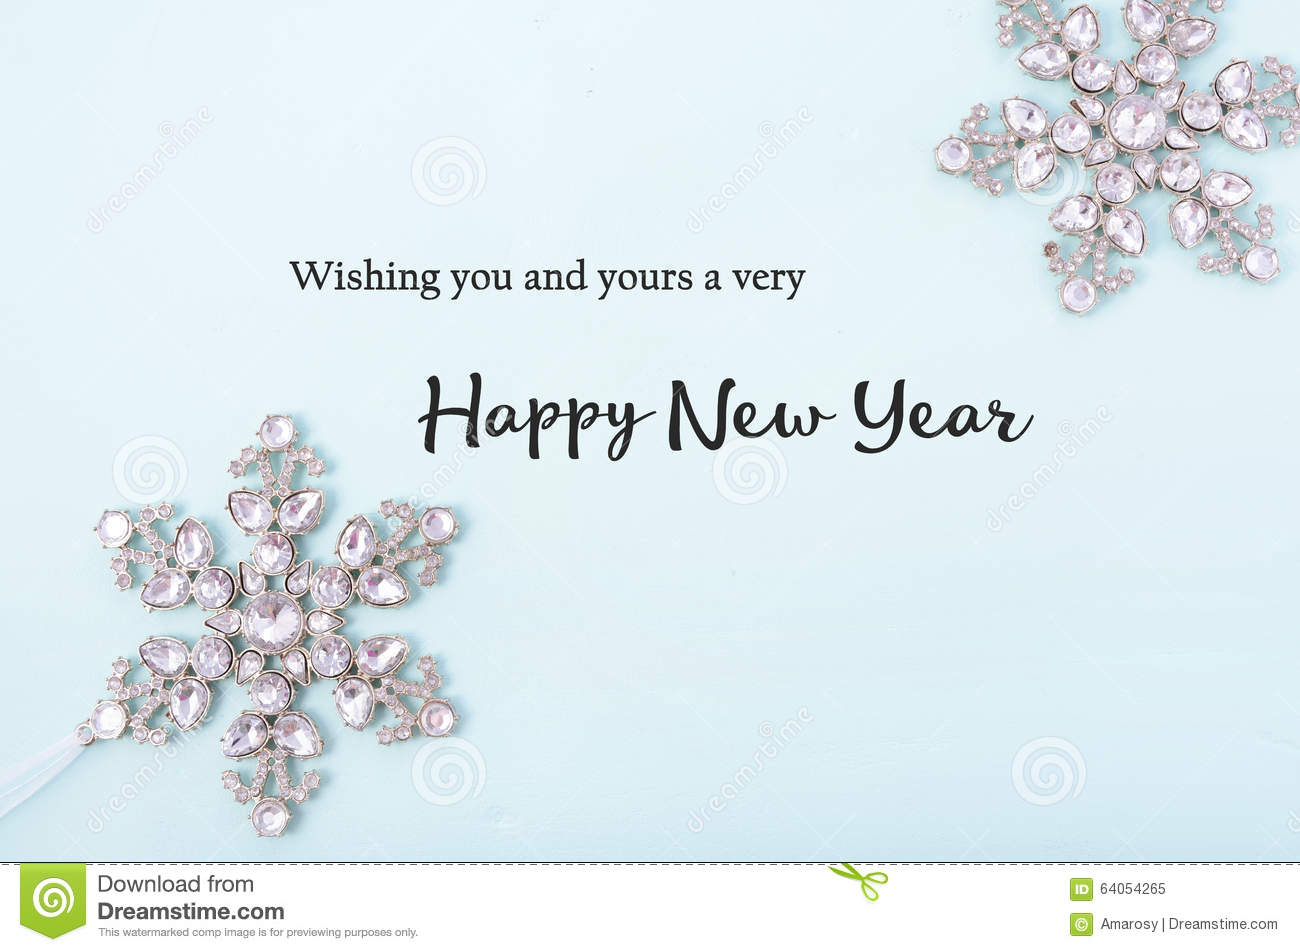 Happy new year greetings on decorated background stock image happy new year background with snowflake ornaments on pale blue wood with sample text greeting m4hsunfo